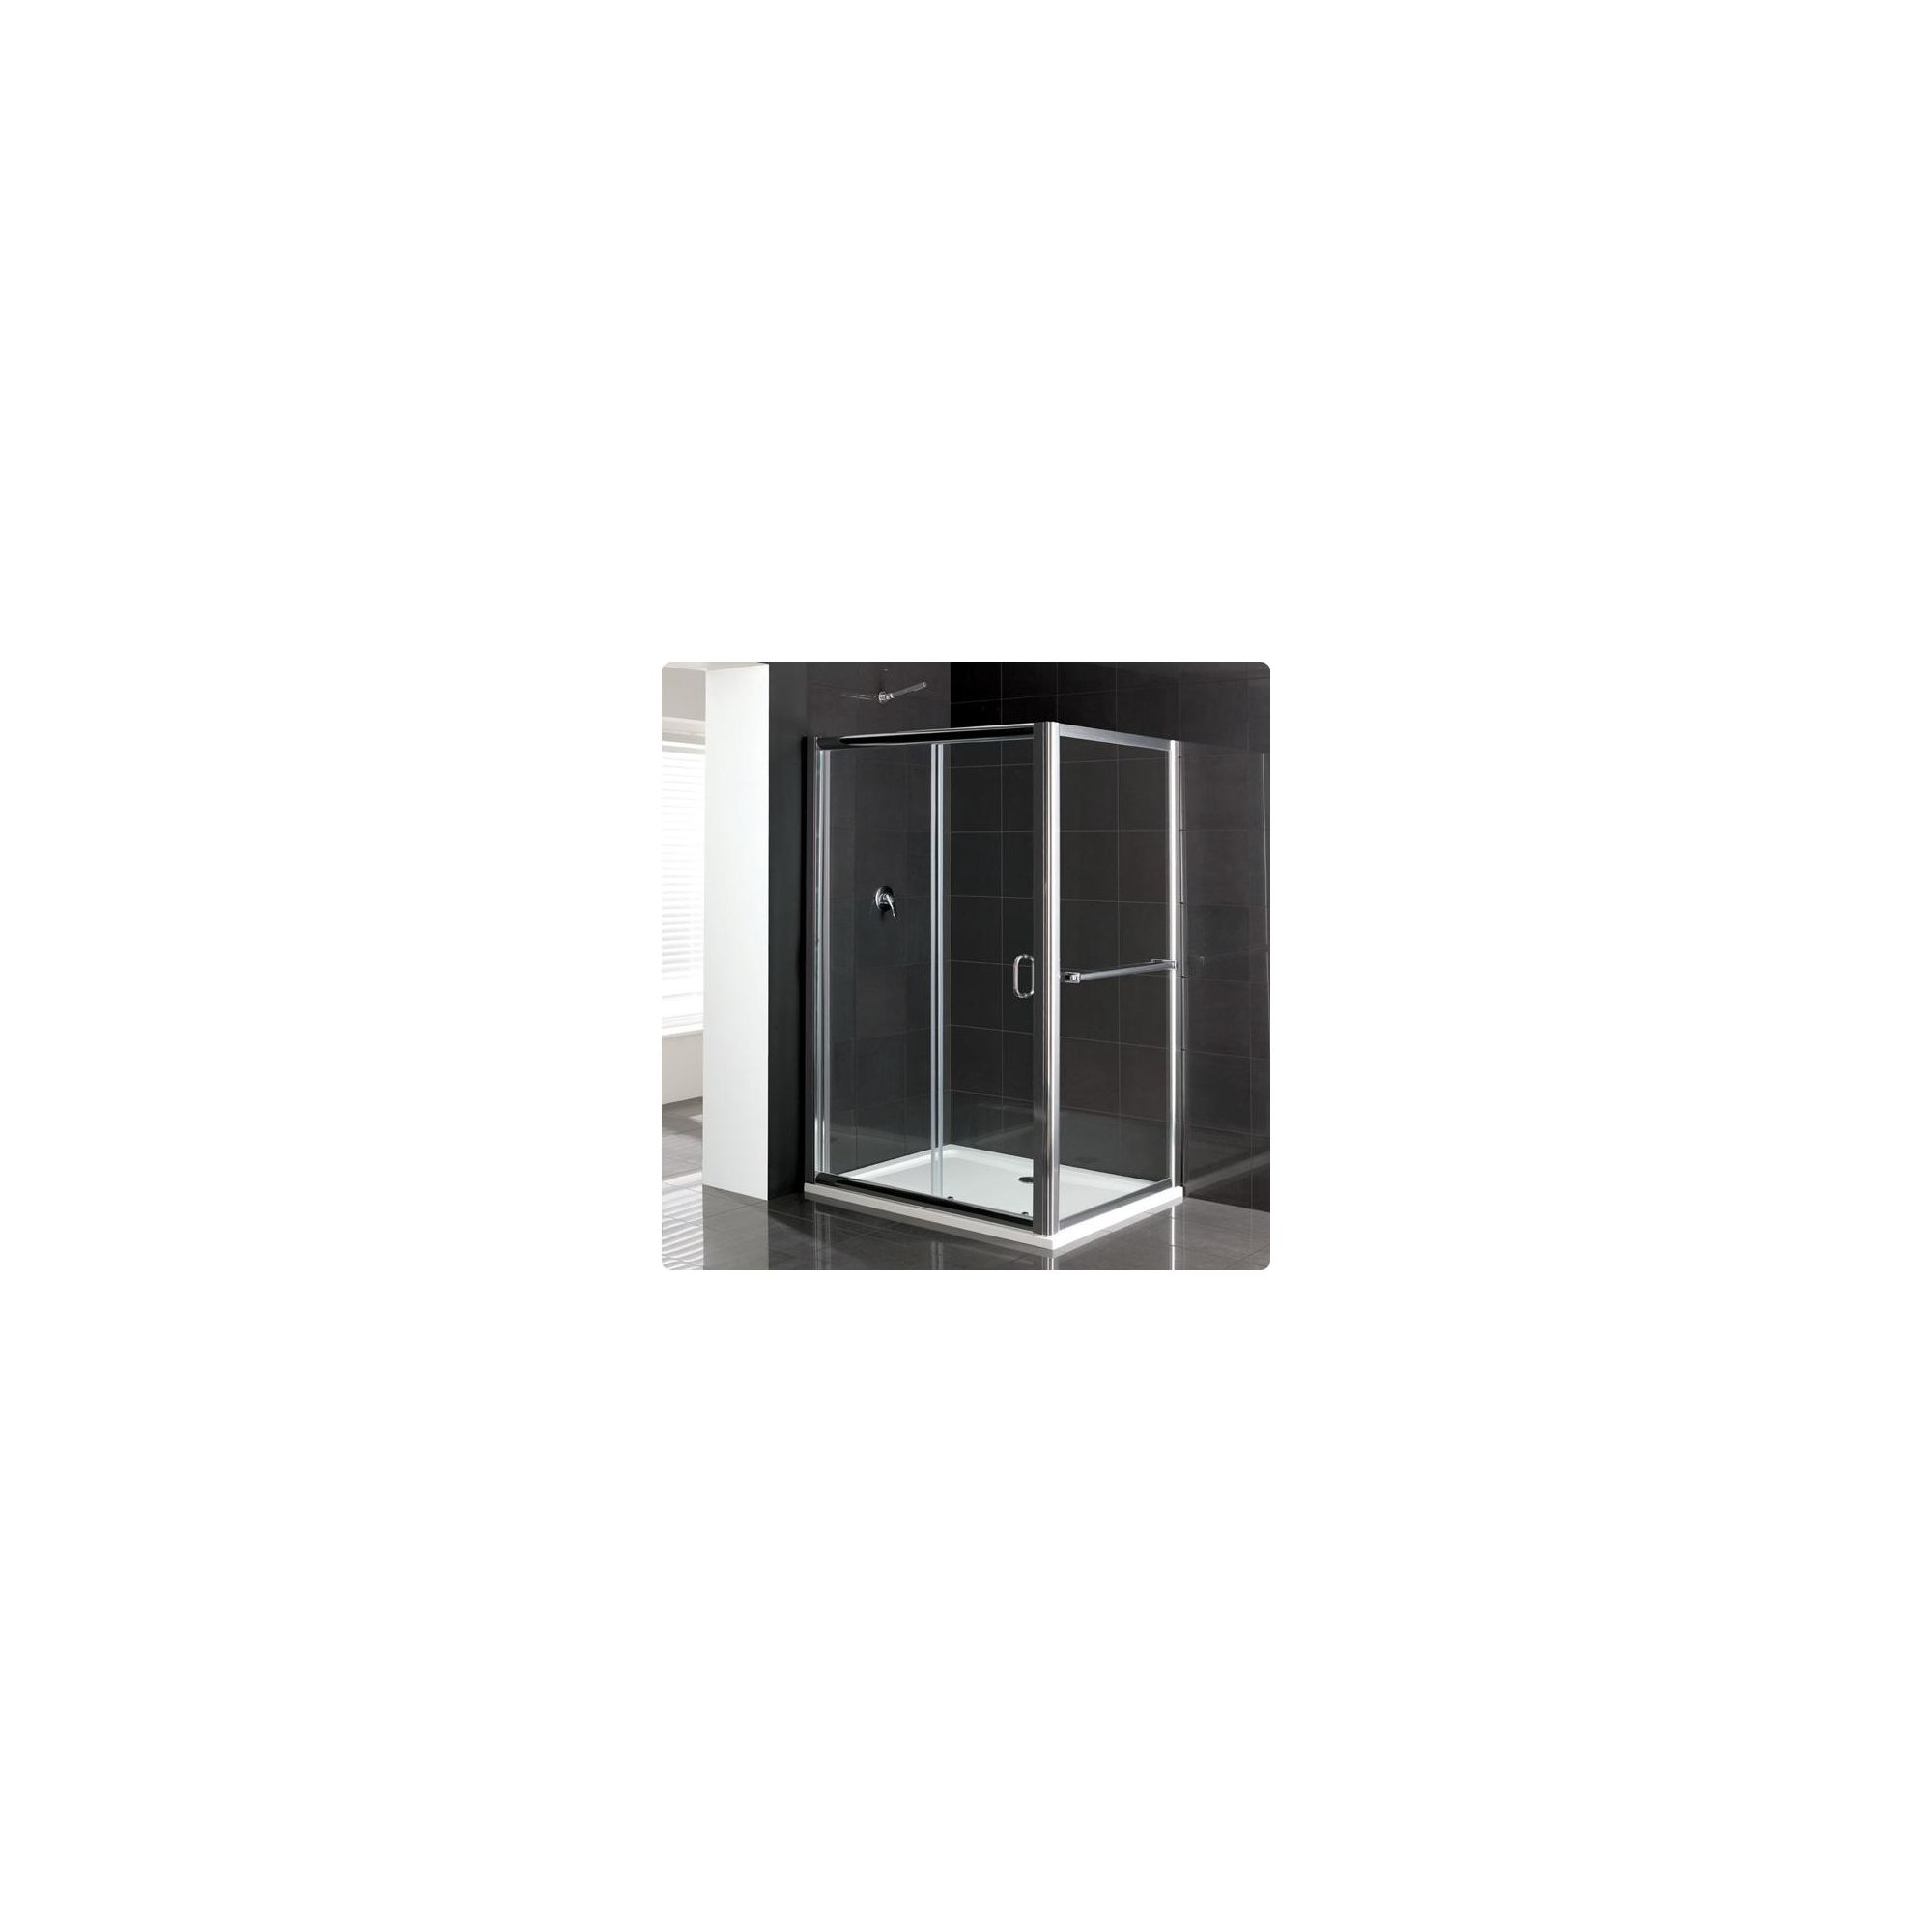 Duchy Elite Silver Sliding Door Shower Enclosure, 1700mm x 760mm, Standard Tray, 6mm Glass at Tesco Direct